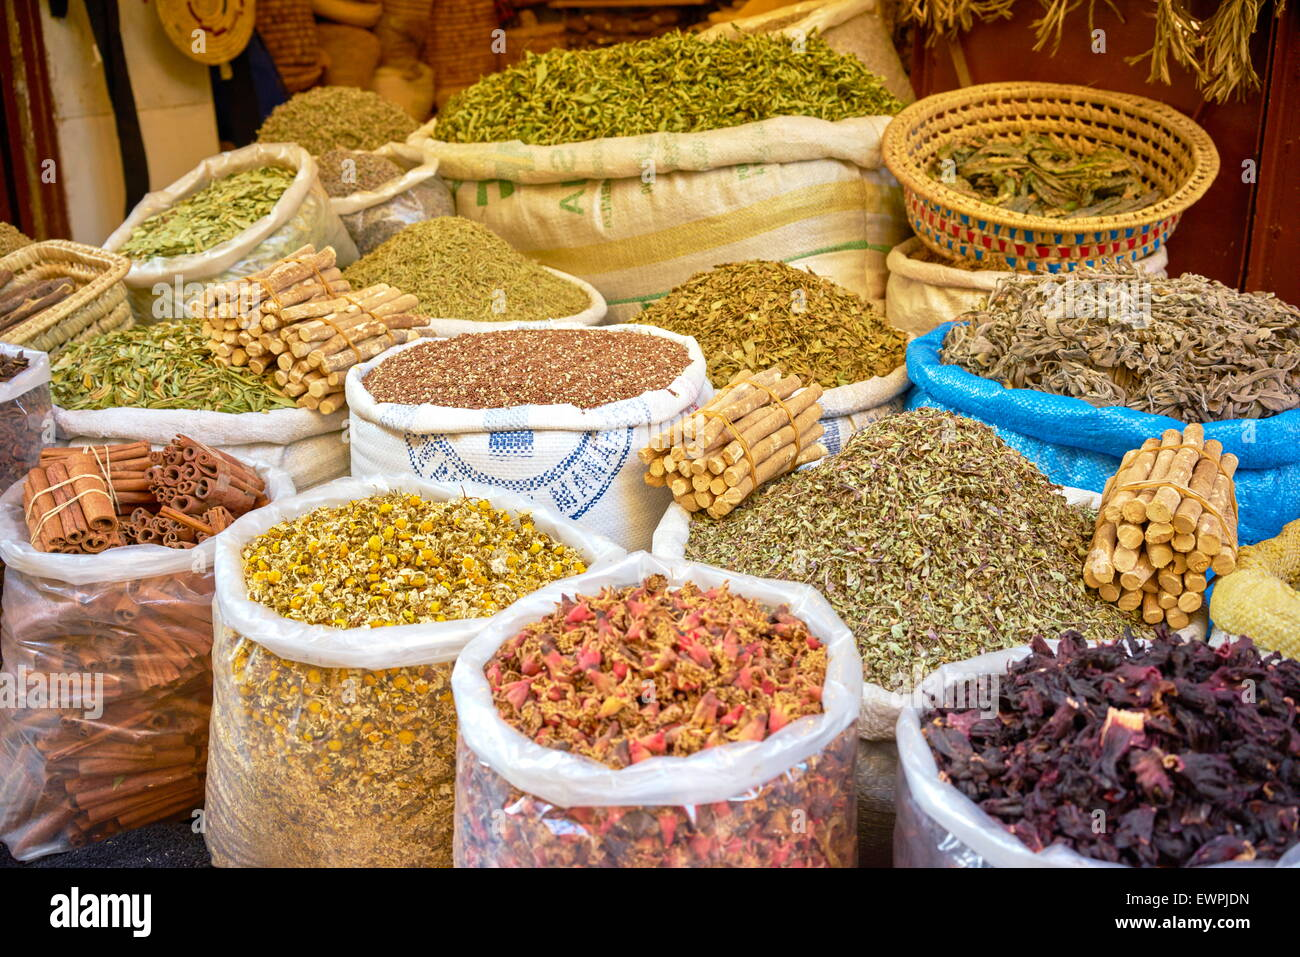 Sacks of dried flowers, rose petals, buds and herbs in the souk. Morocco - Stock Image